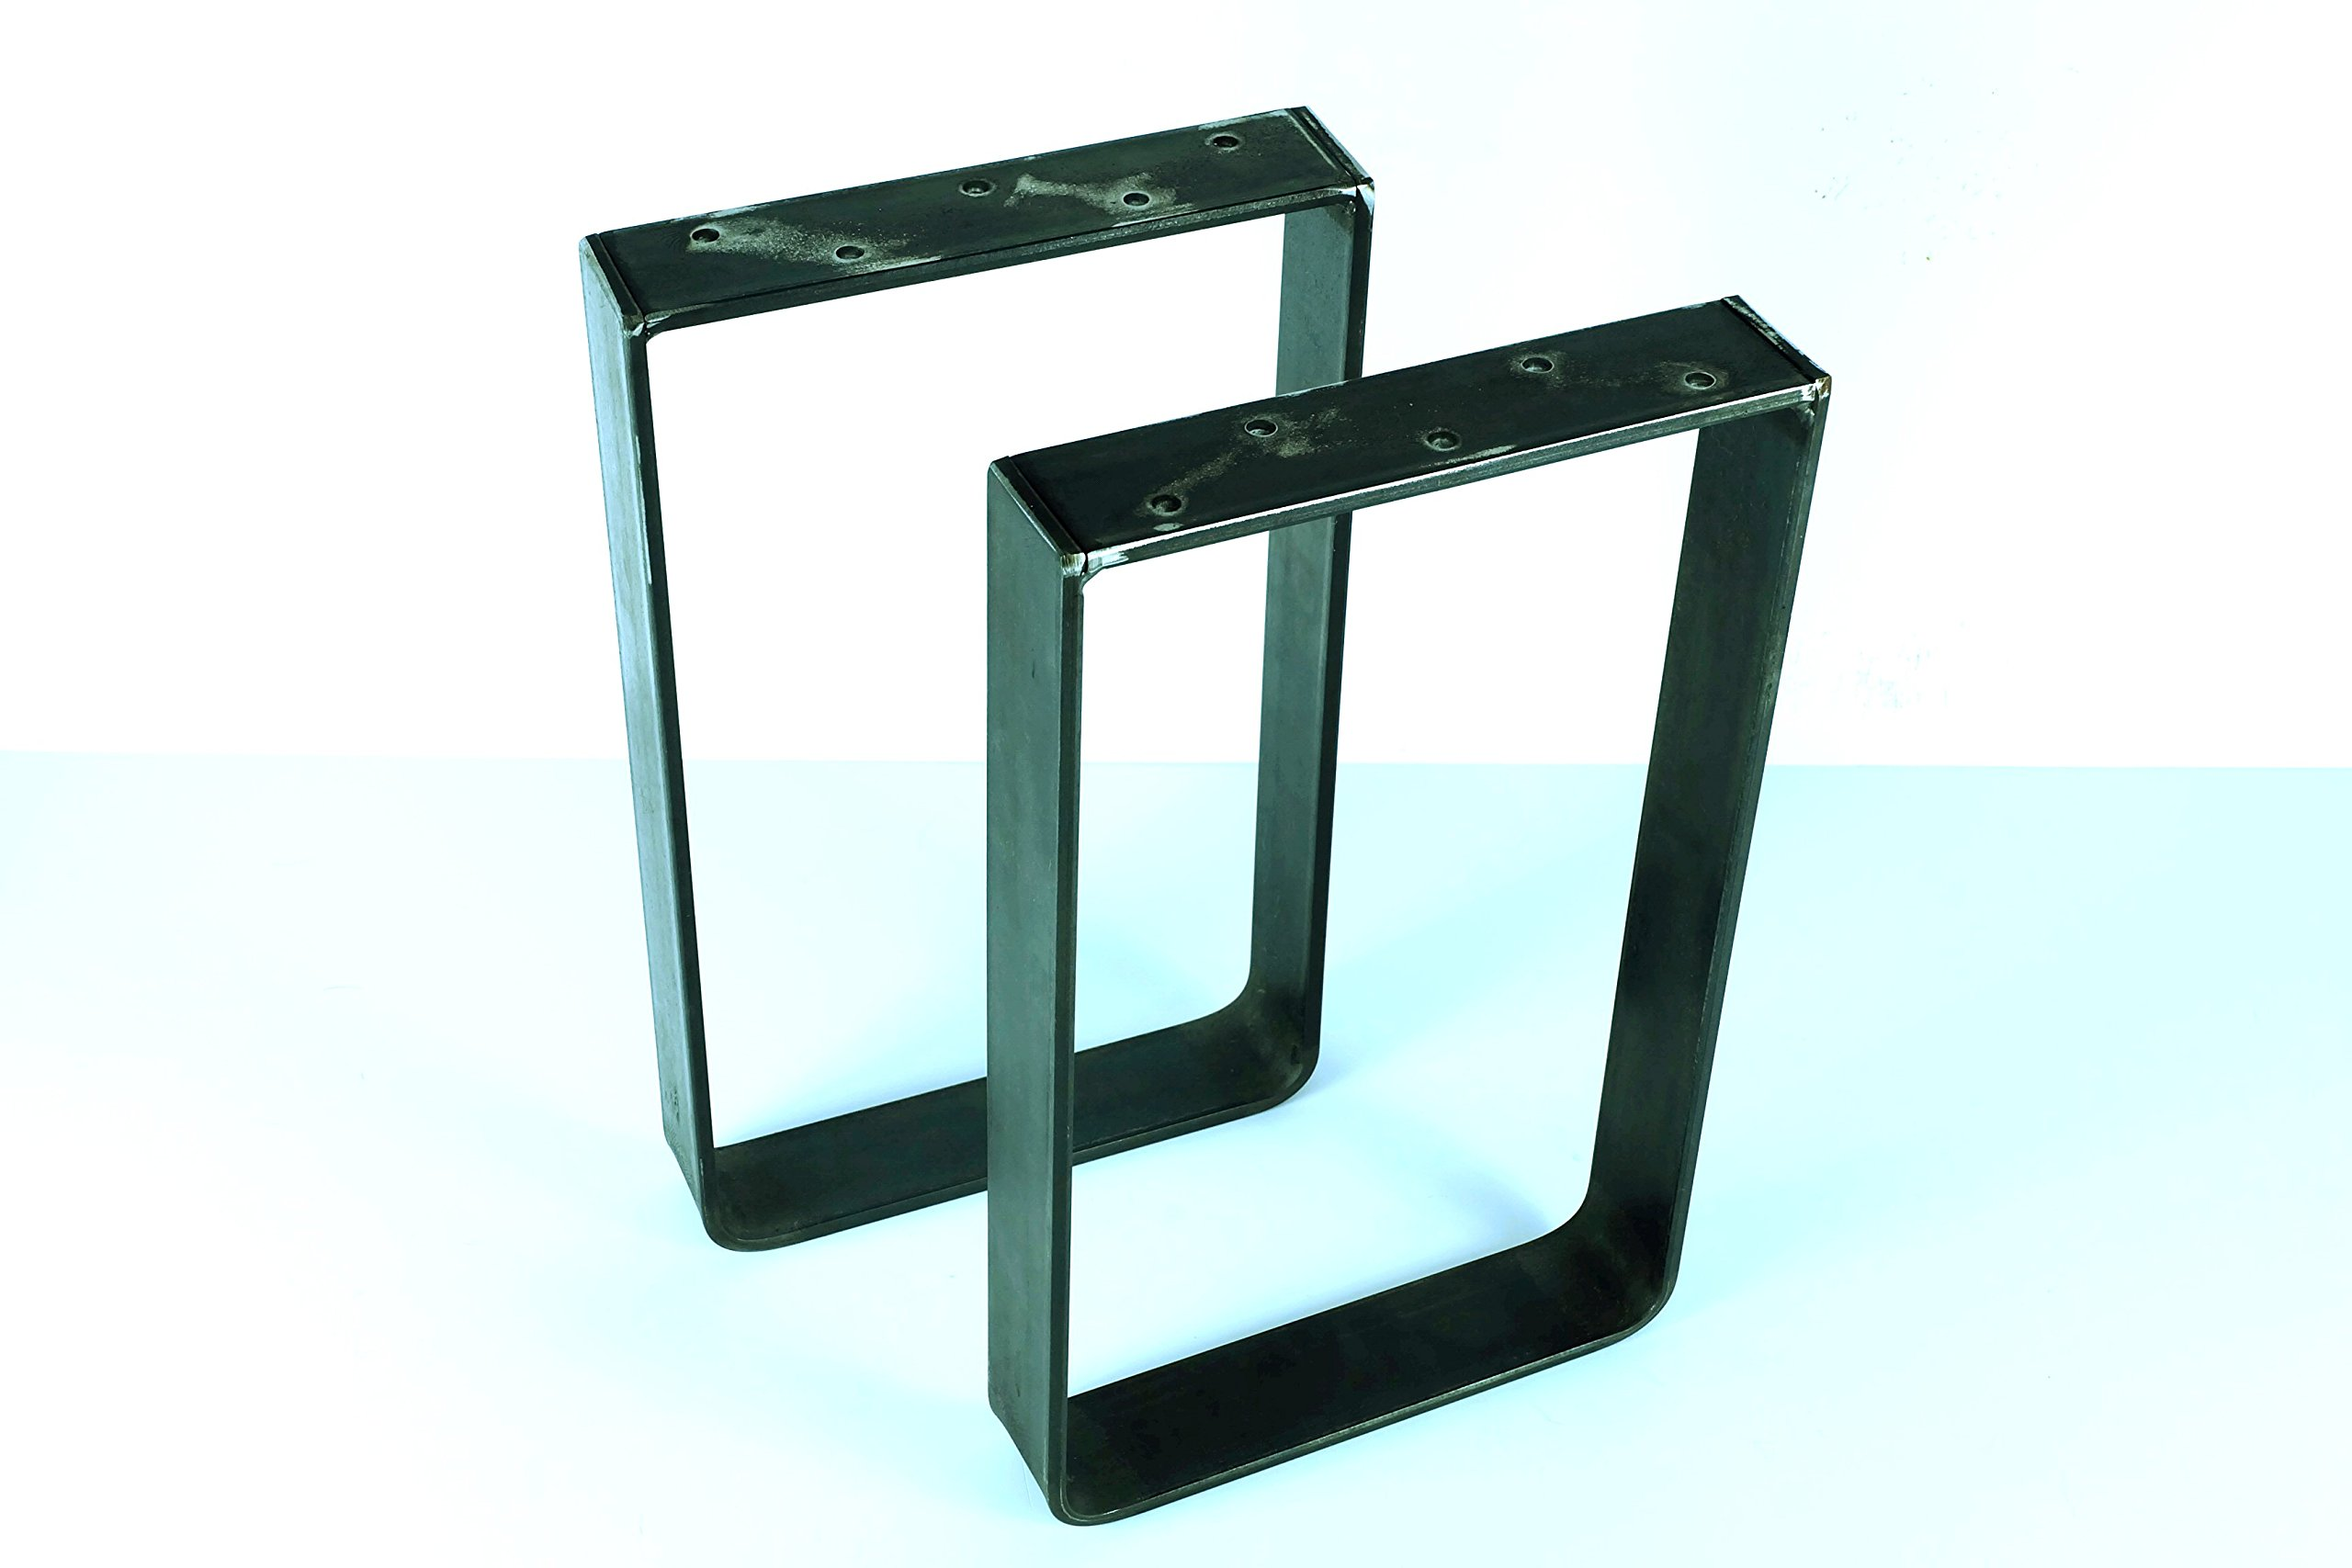 30'' Tall x 14'' Wide Square Table/Bench Legs, 2'' Wide x .25'' Thick Solid Steel Flat Bar, Powder Coated Satin Black, Set of 2